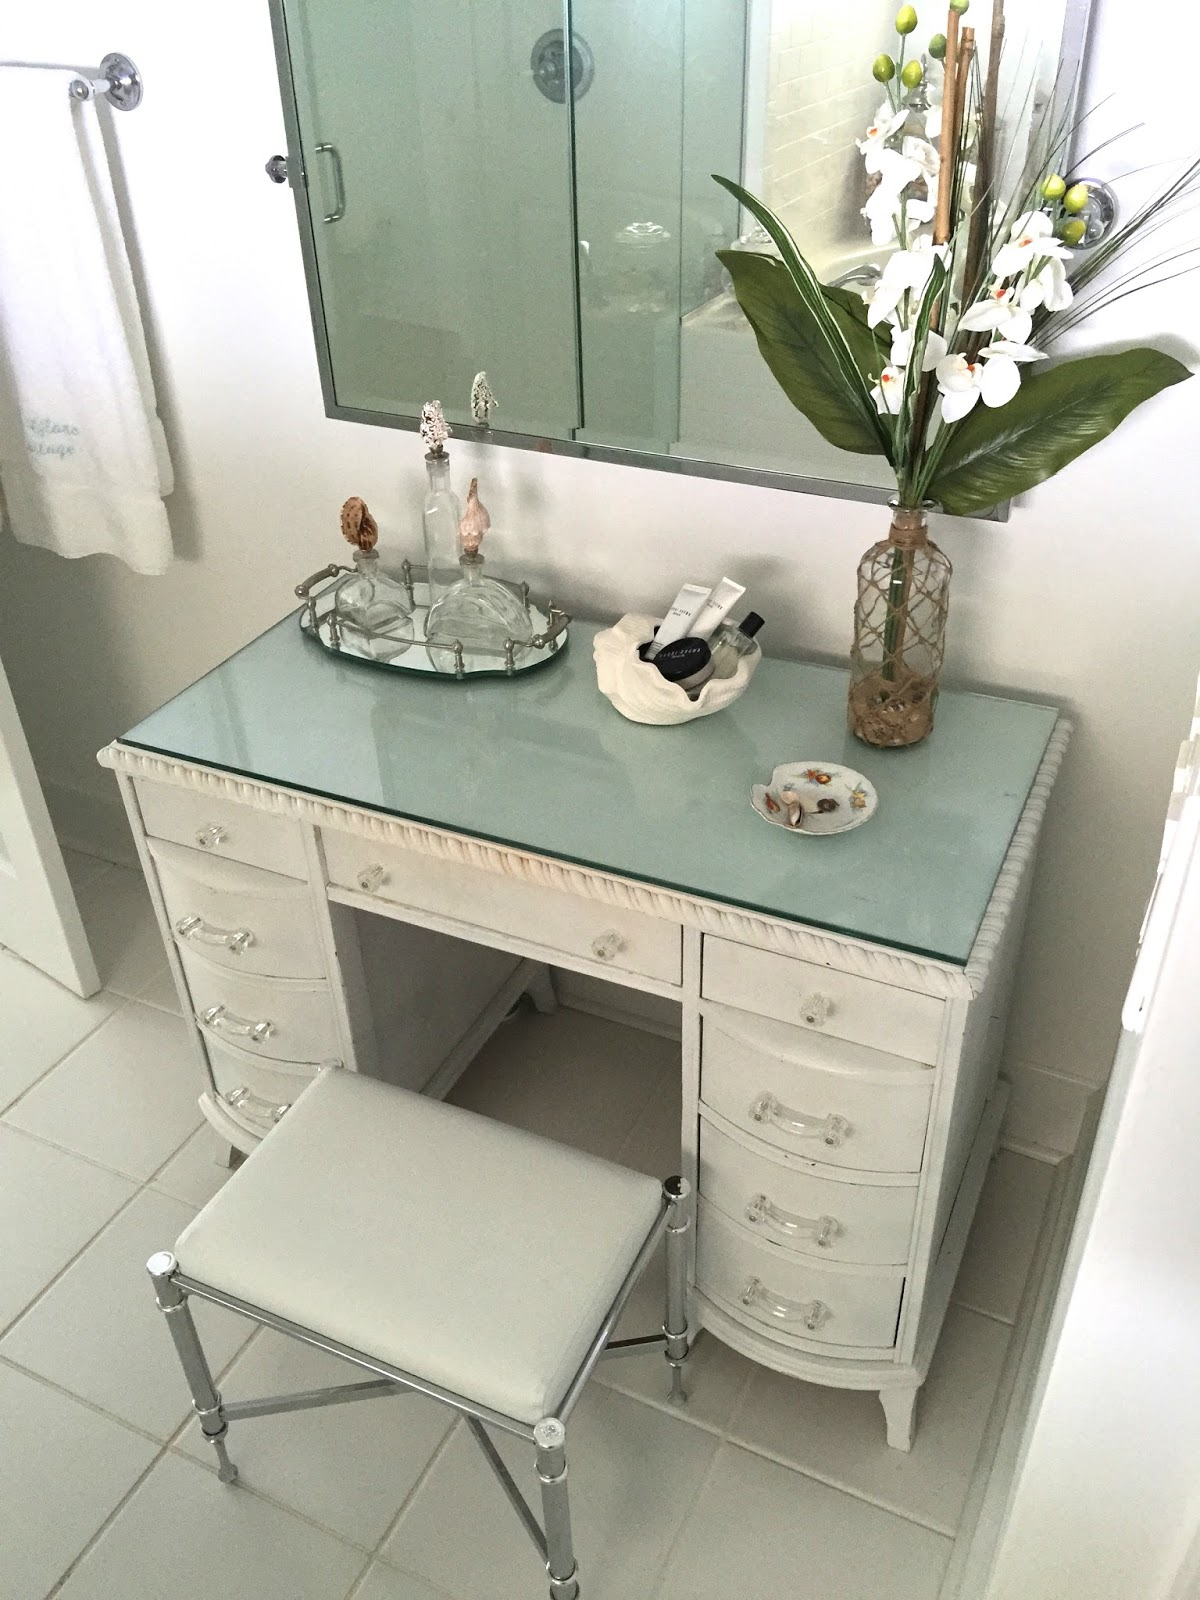 Glass Top Makeup Vanity Rickevans Homes - Glass top makeup vanity - DIY Glass Top Makeup Vanity Pictures. Bedroom White Glass Top